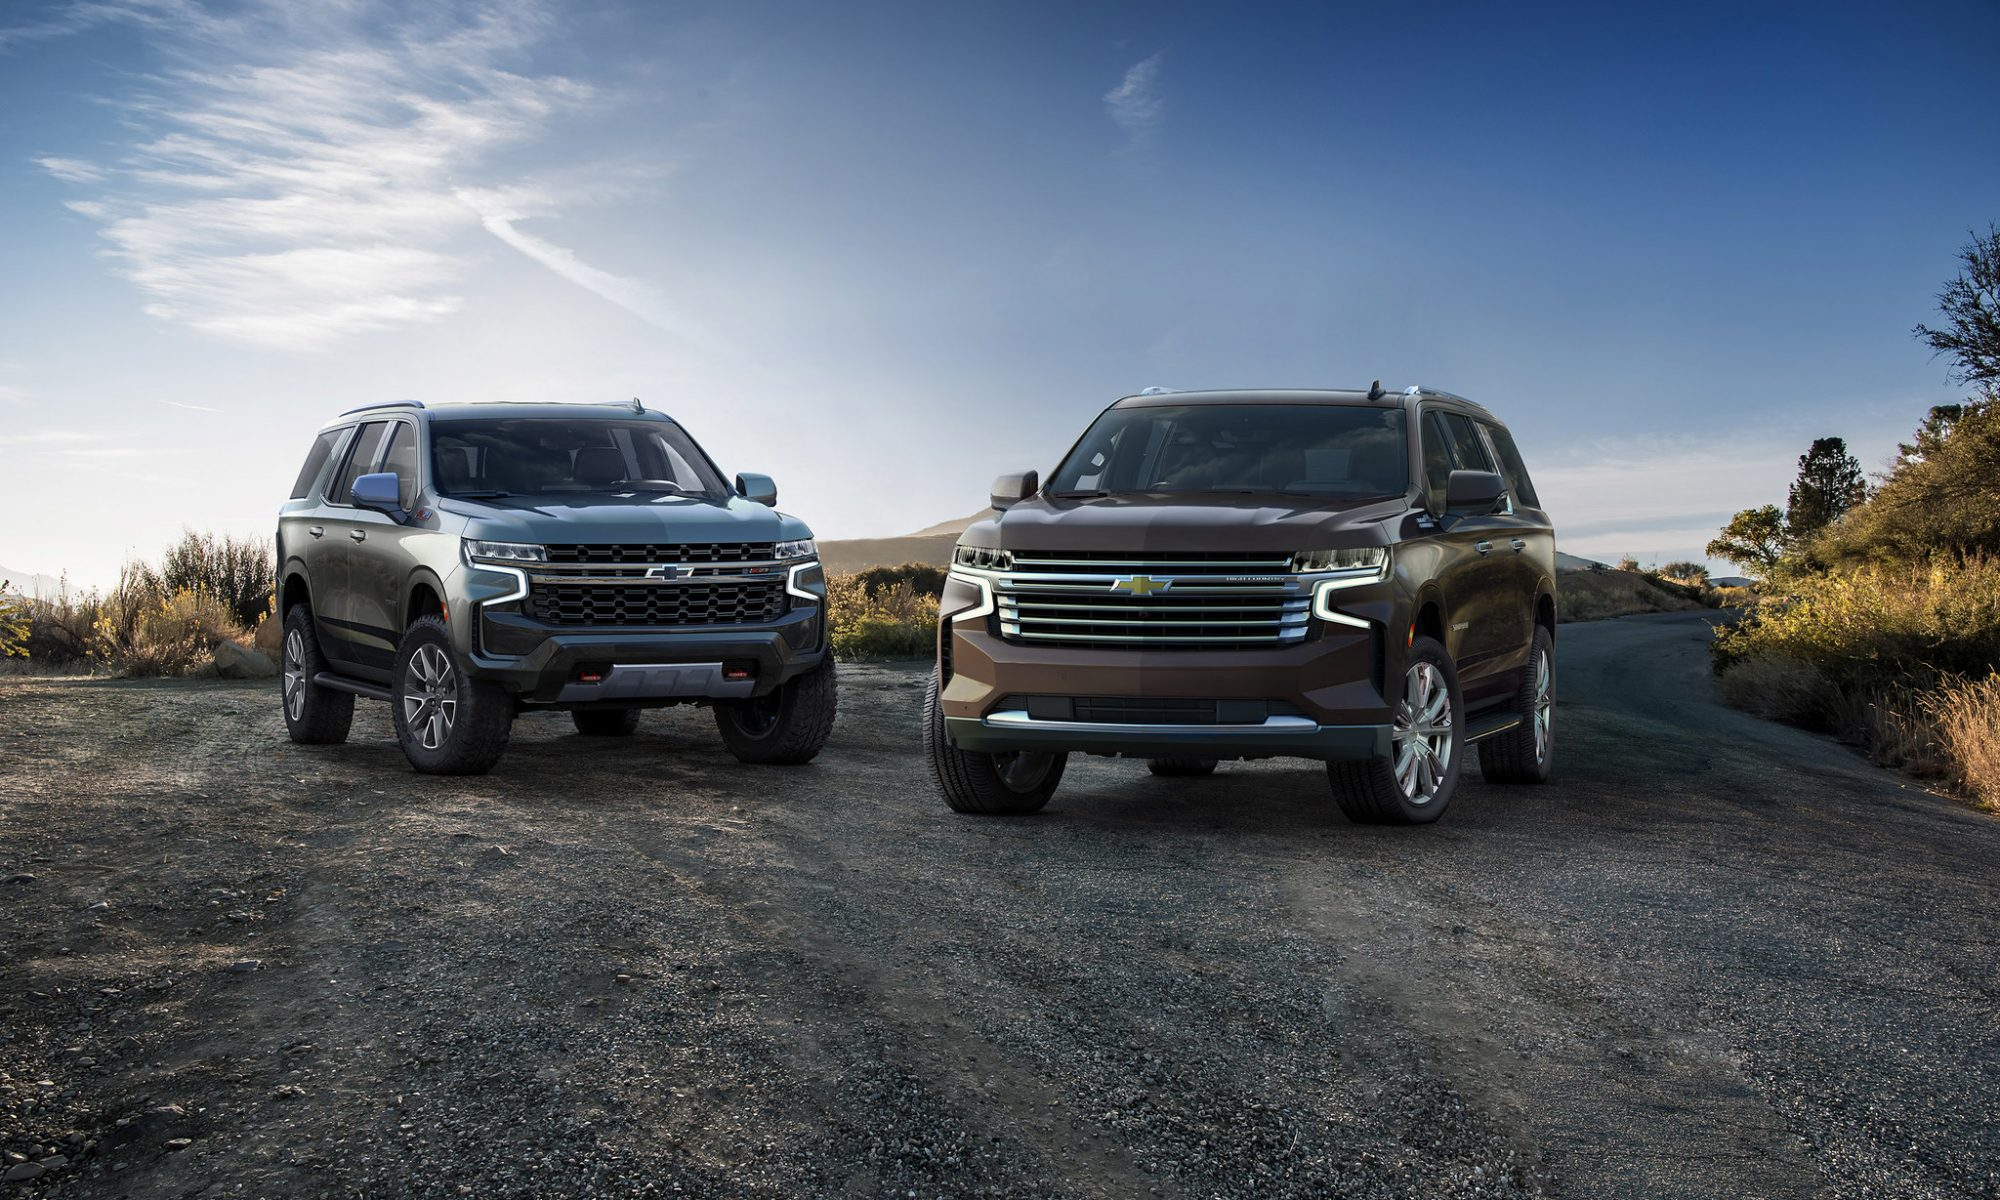 2021 Chevrolet Tahoe and Suburban